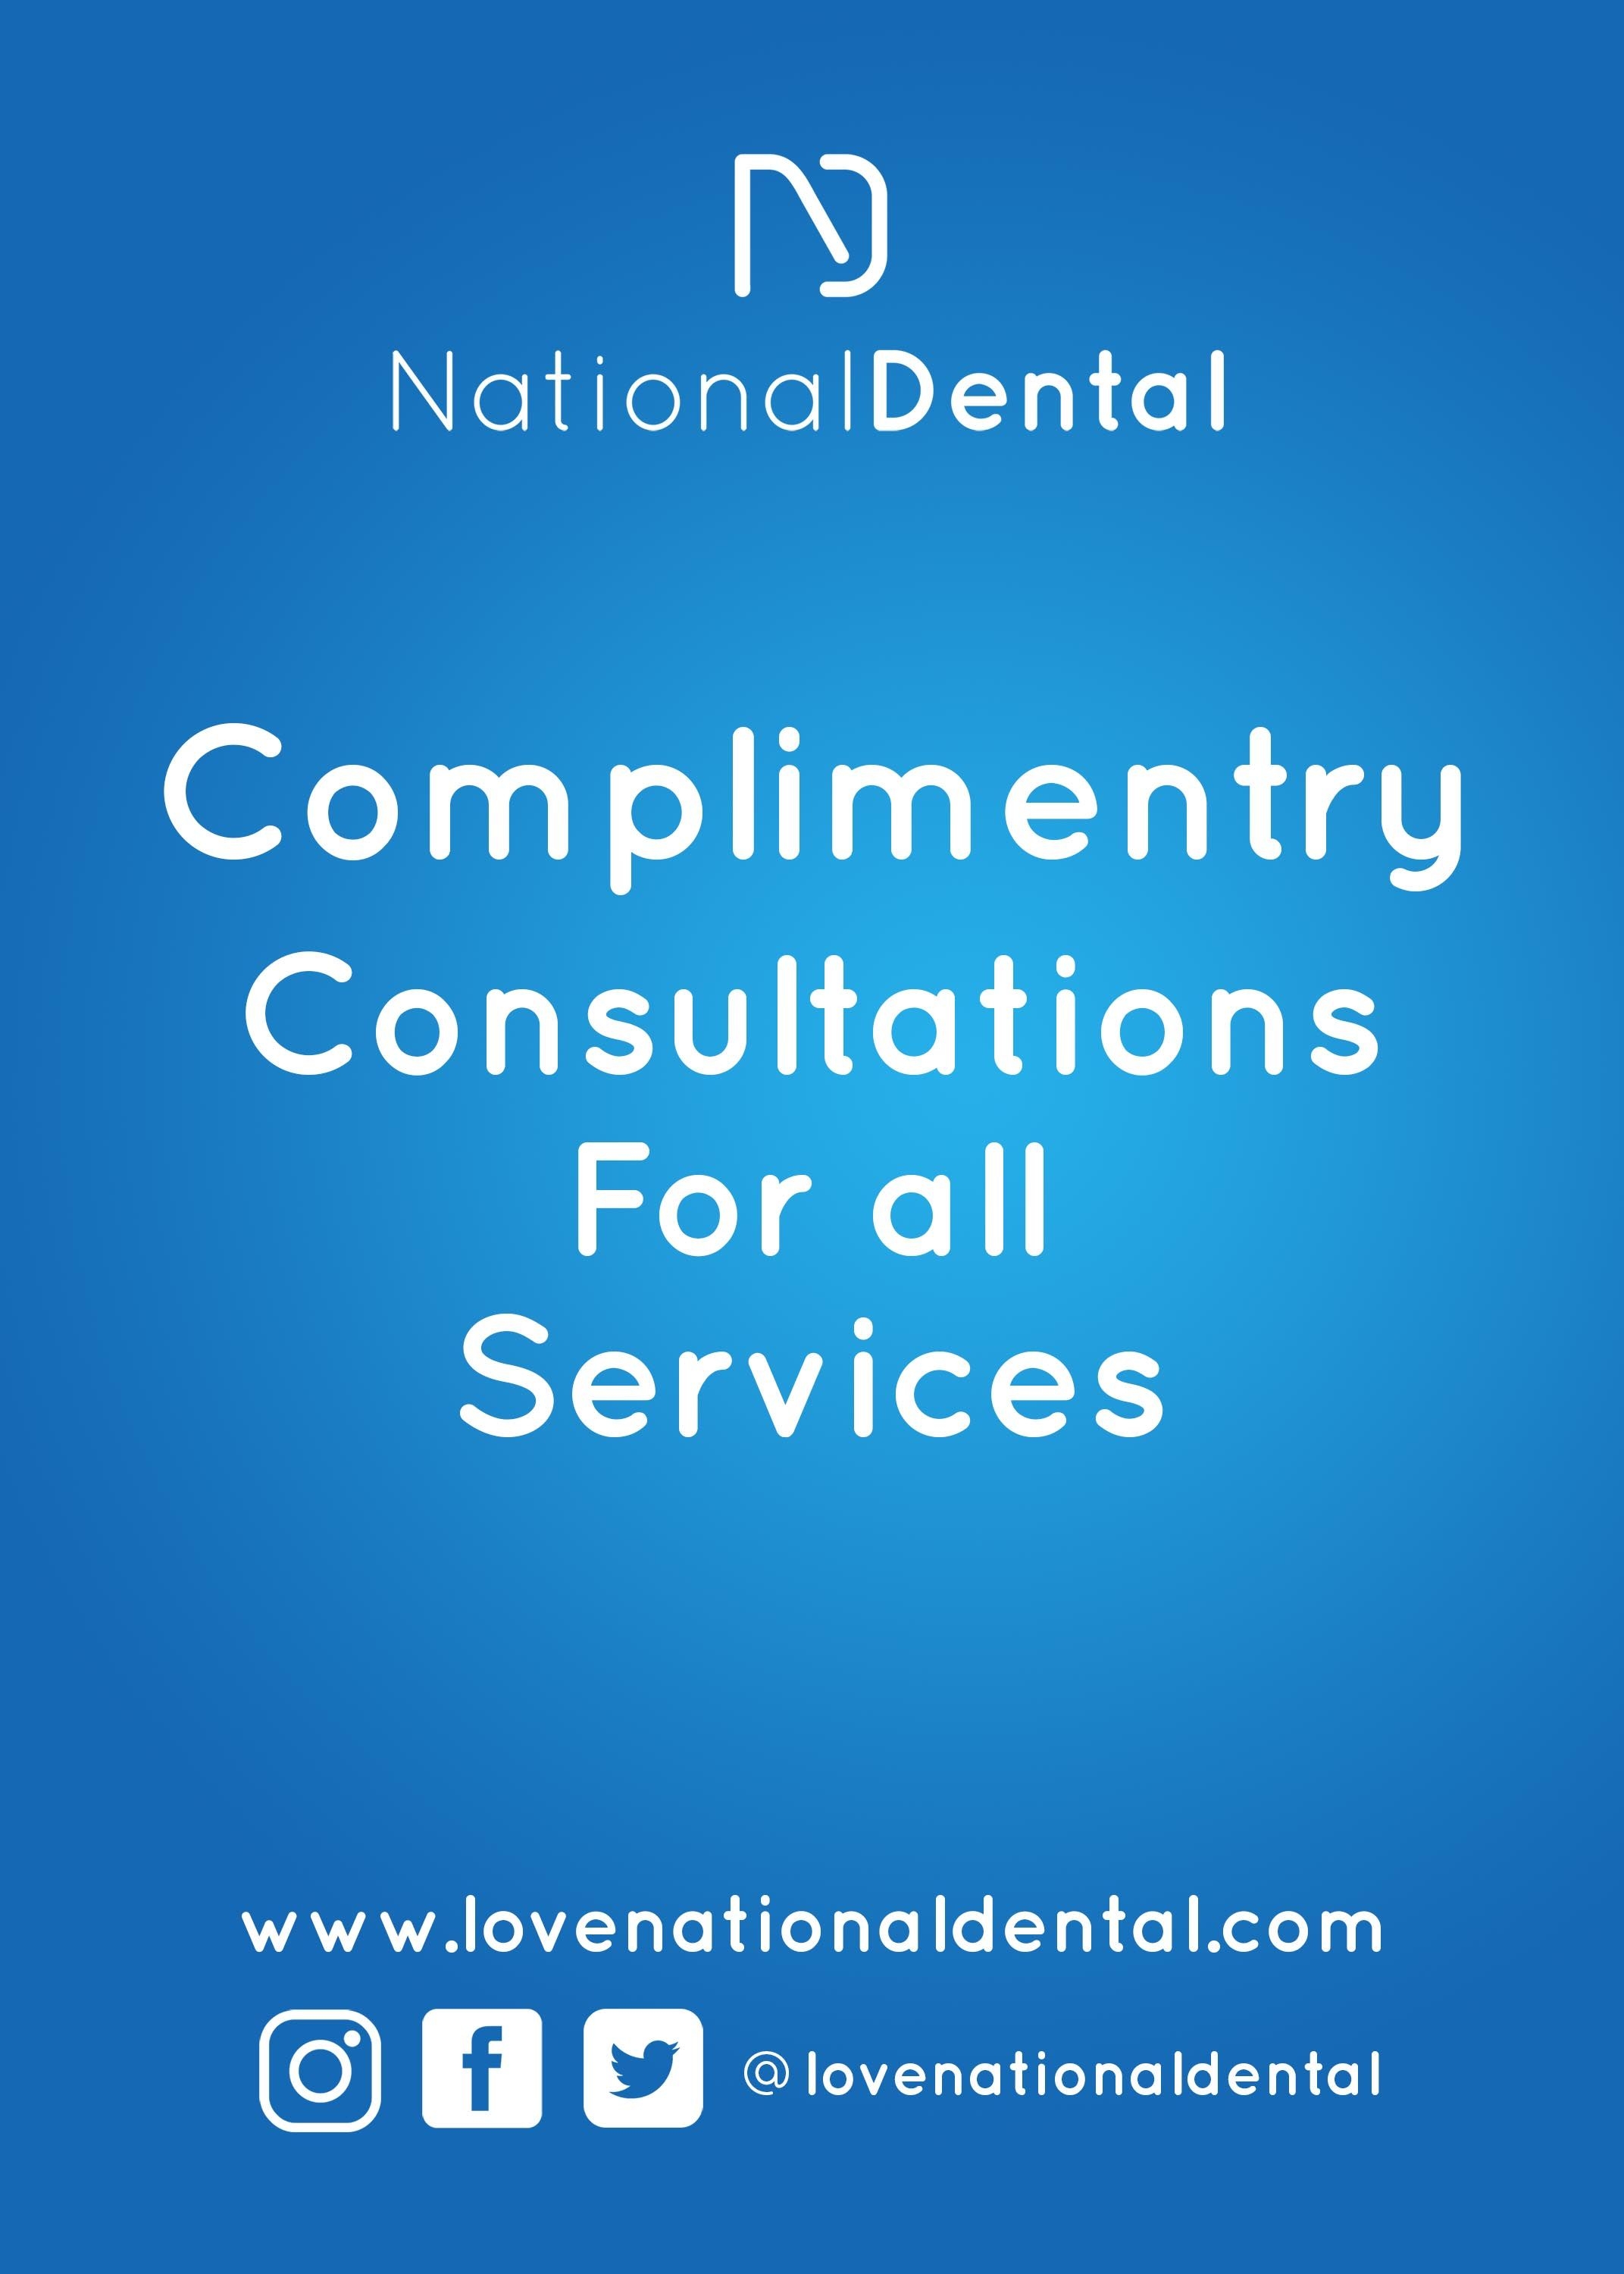 We provide Complimentary Consultations for all services at